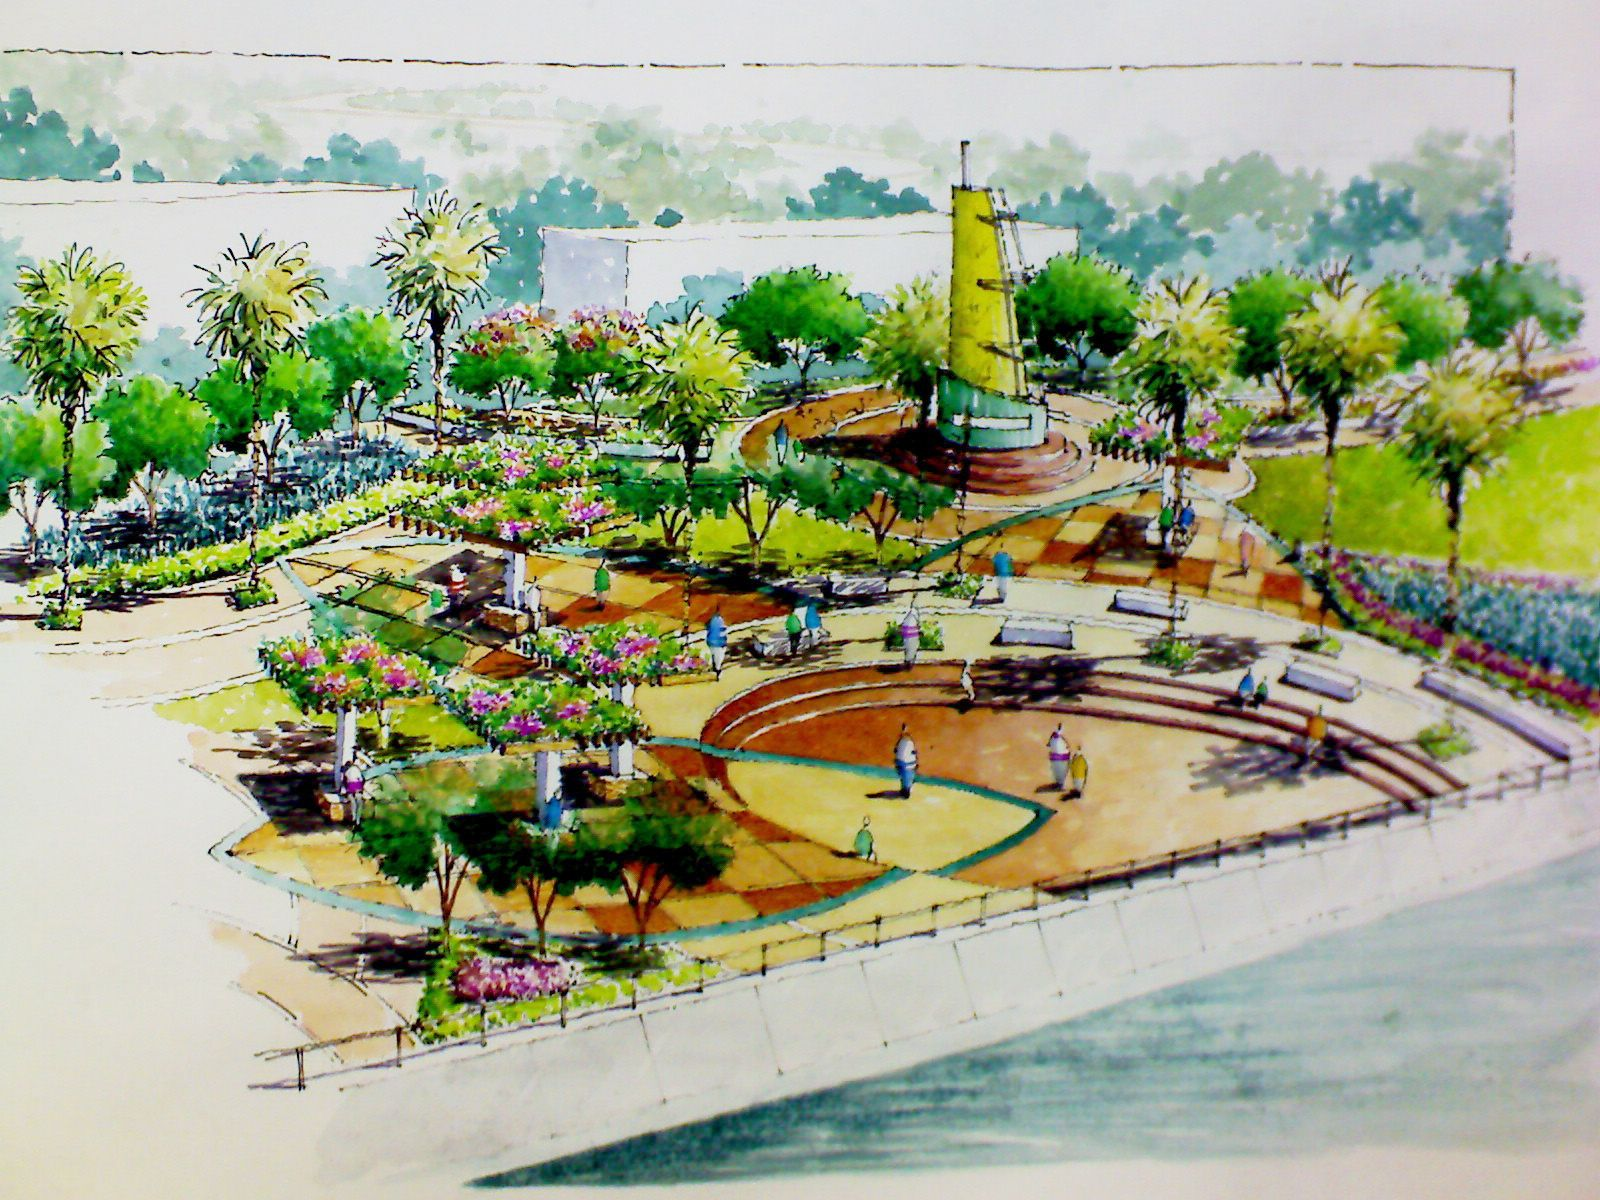 Landscape Design Perspective Central Plaza Modern Landscape Urban Design Landscape Corridor And Entryway Arch Gateway Park Hardscape Gard Thiết Kế Canh